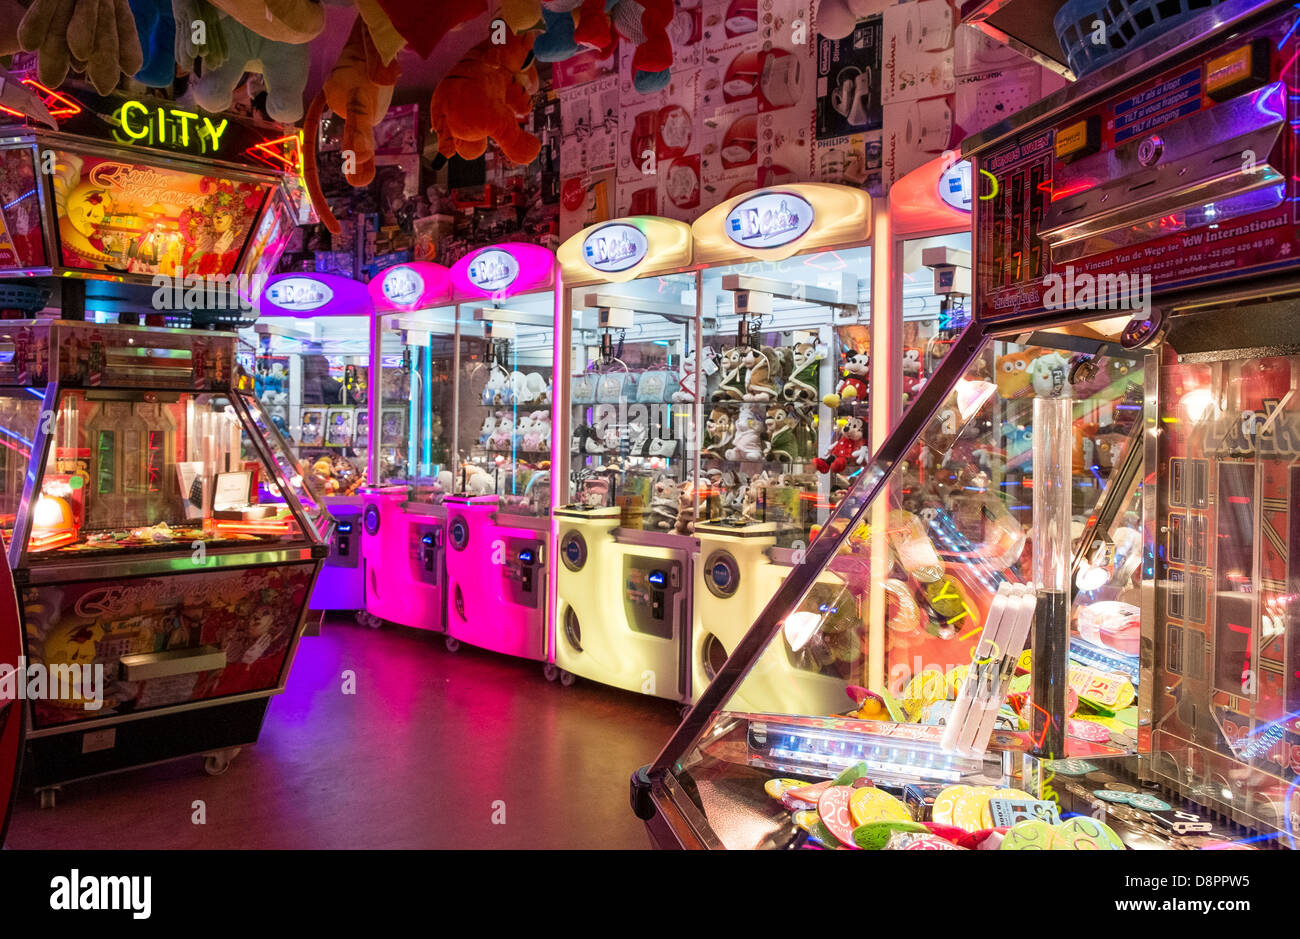 amusement arcade fairground stall game luck chance - Stock Image